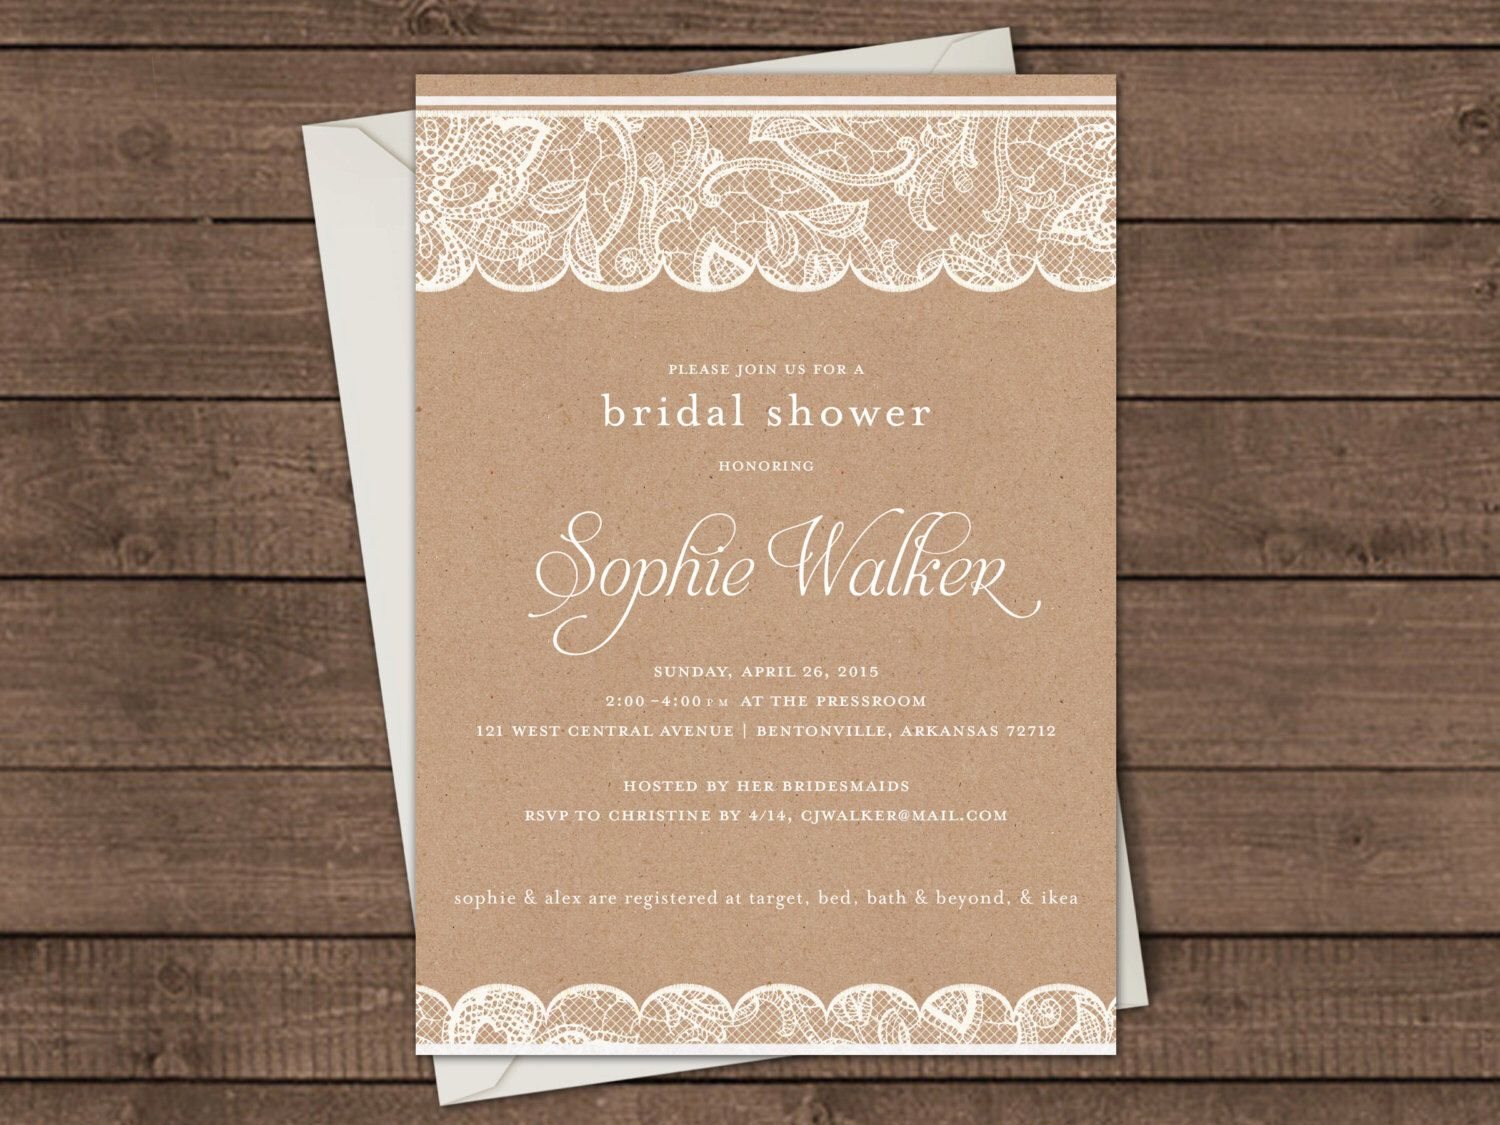 Custom Craft Paper and Lace Bridal Shower Invitation | Natural, Rustic Wedding Invite- DIGITAL FILE ONLY by InkInTheOzarks on Etsy https://www.etsy.com/listing/226200053/custom-craft-paper-and-lace-bridal